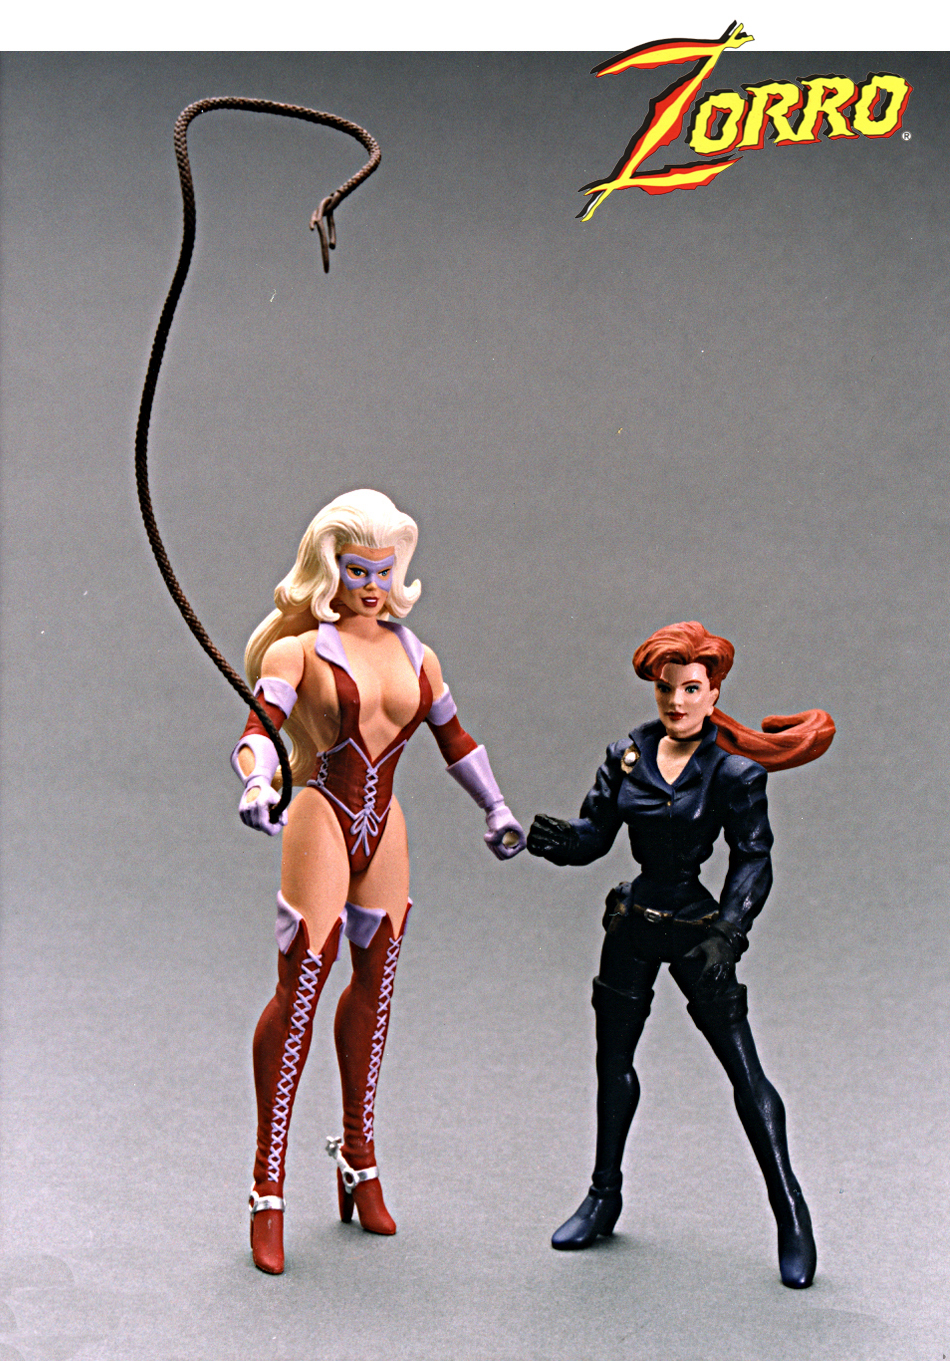 The tall girl was for year two of Zorro from Playmates but never produced